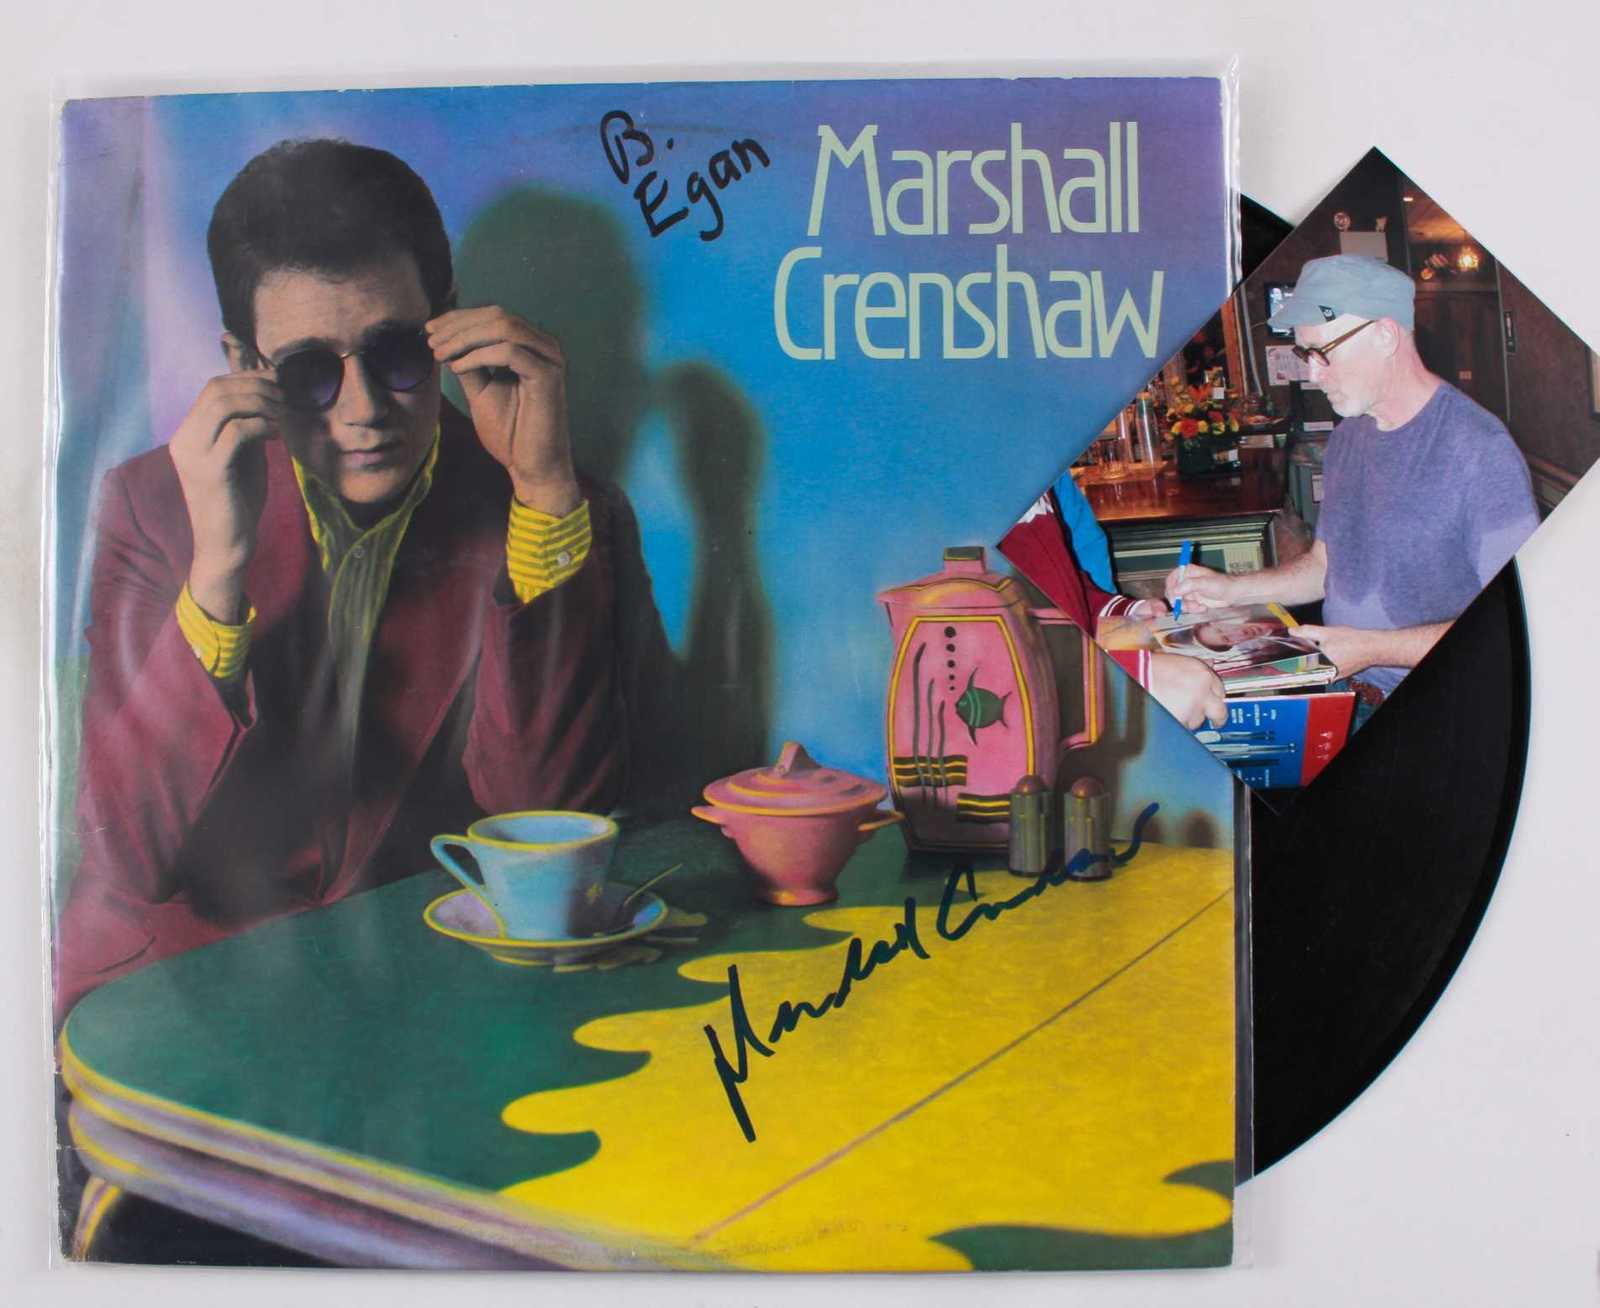 Primary image for Marshall Crenshaw Signed Autographed Record Album w/ Proof Photo